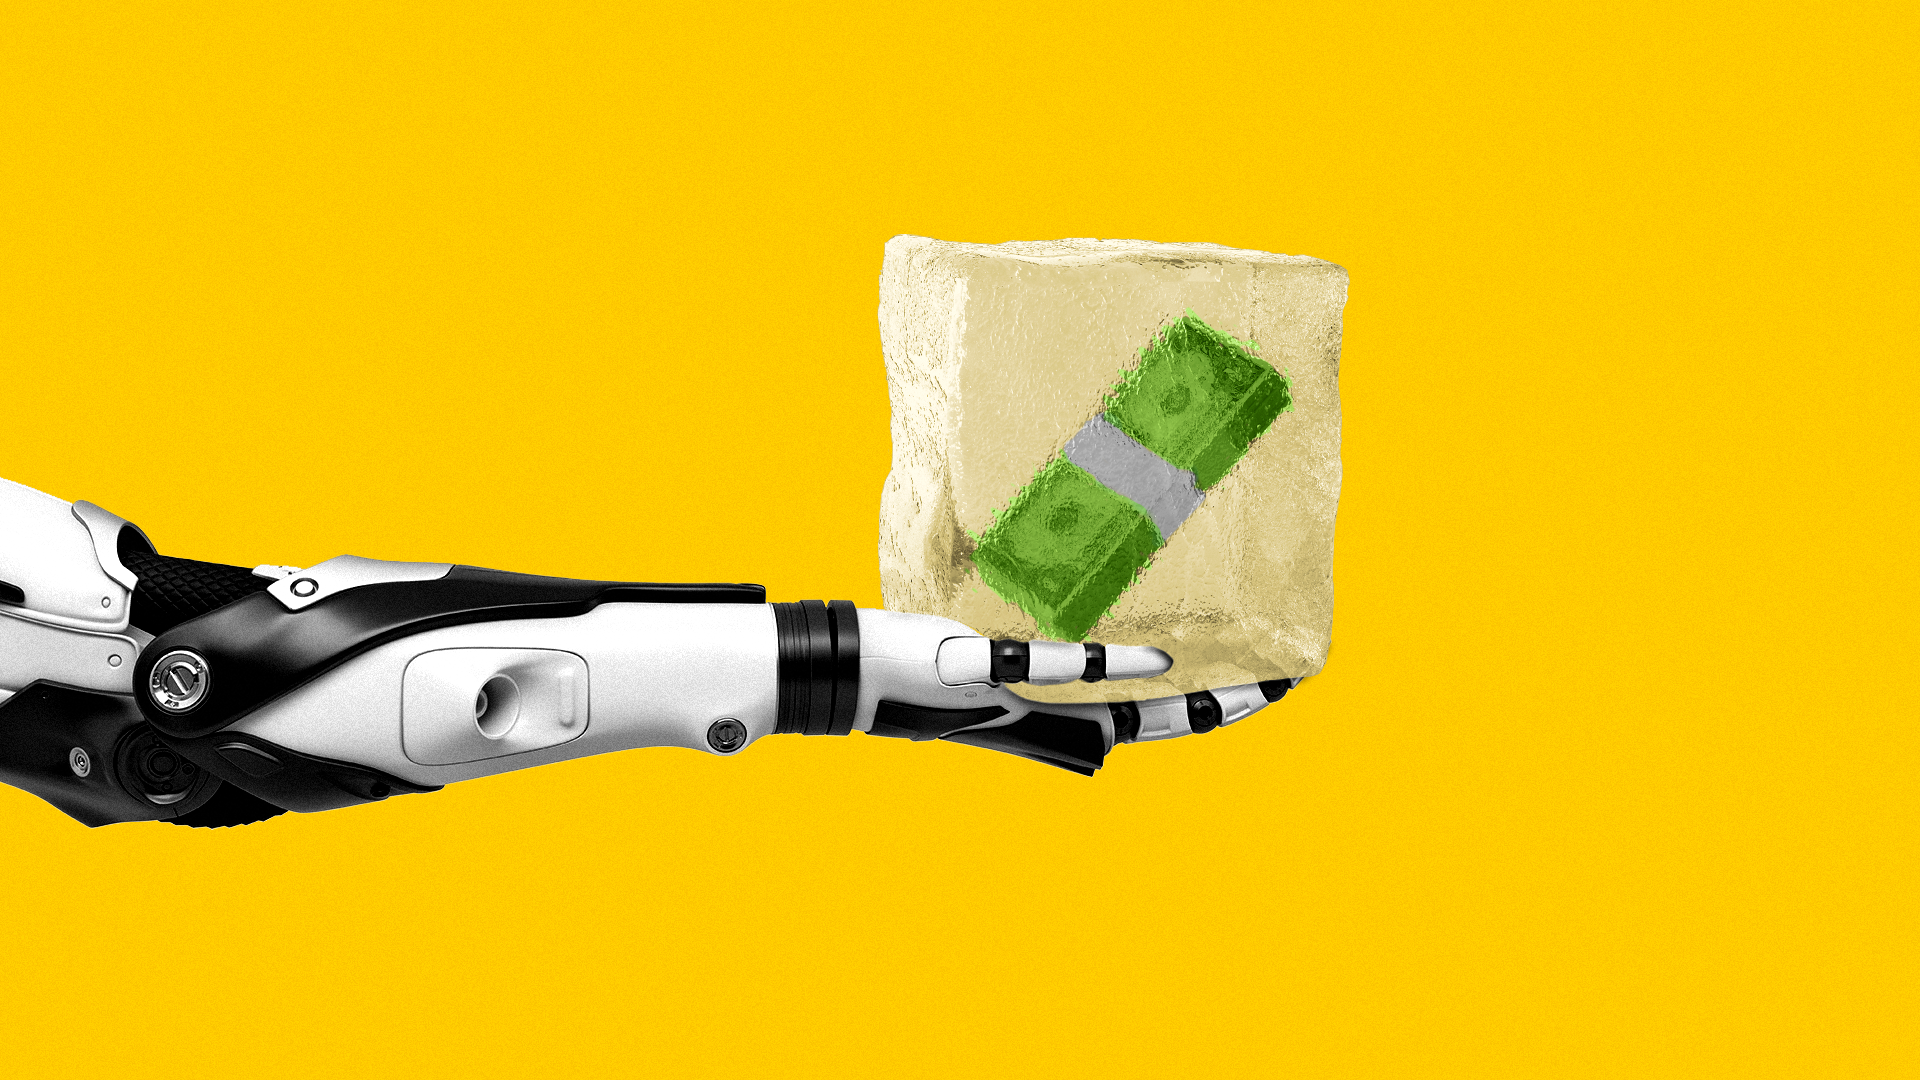 Illustration of a robot arm holding an ice cube with a stack of money frozen in the center.